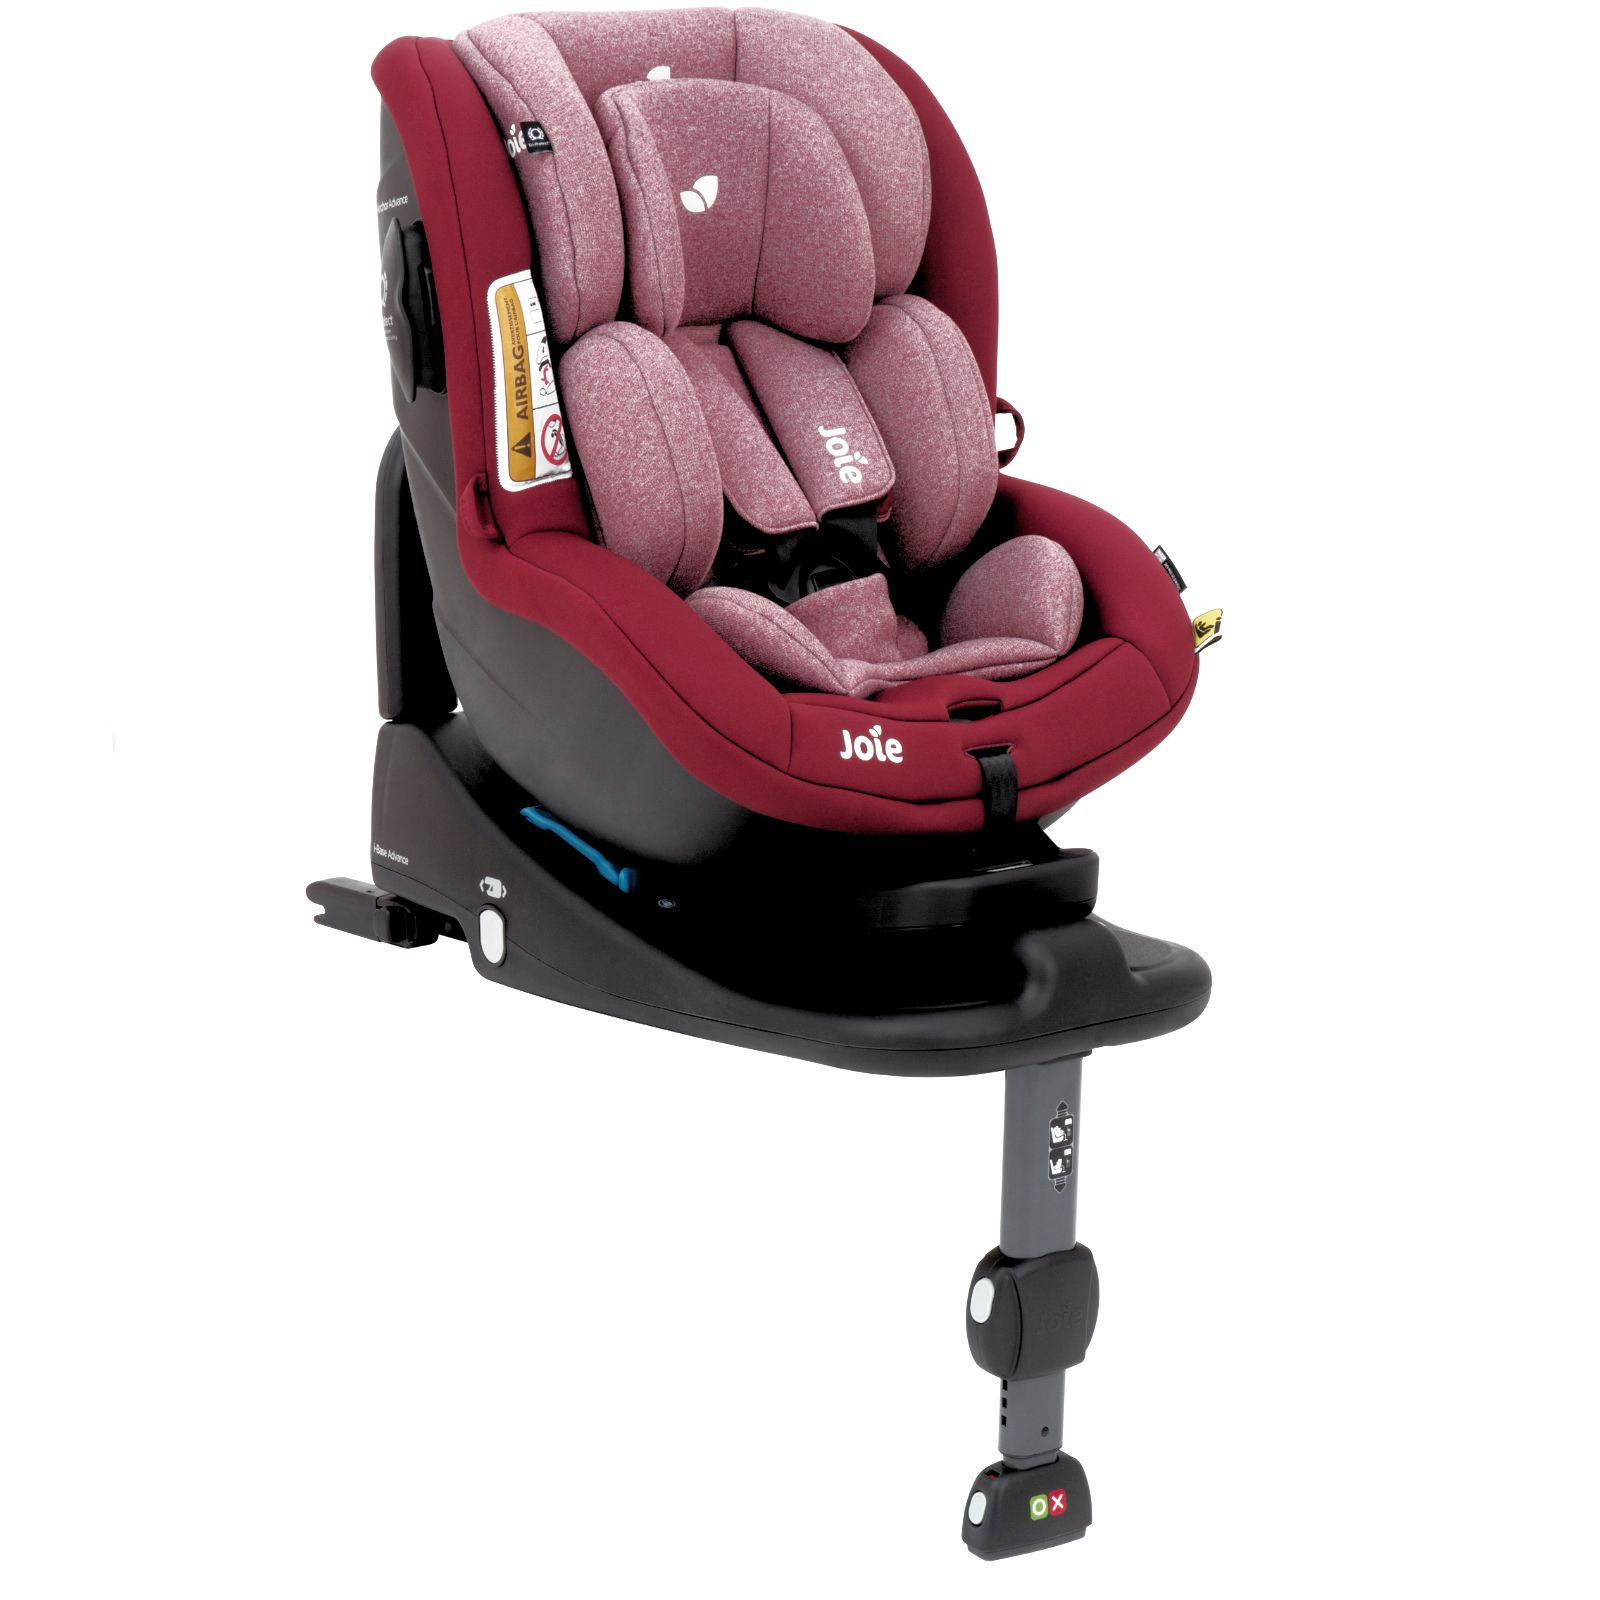 Joie Isofix Ebay Details About New Joie Merlot I Anchor Advance Group 1 Car Seat Baby Carseat Isofix Base